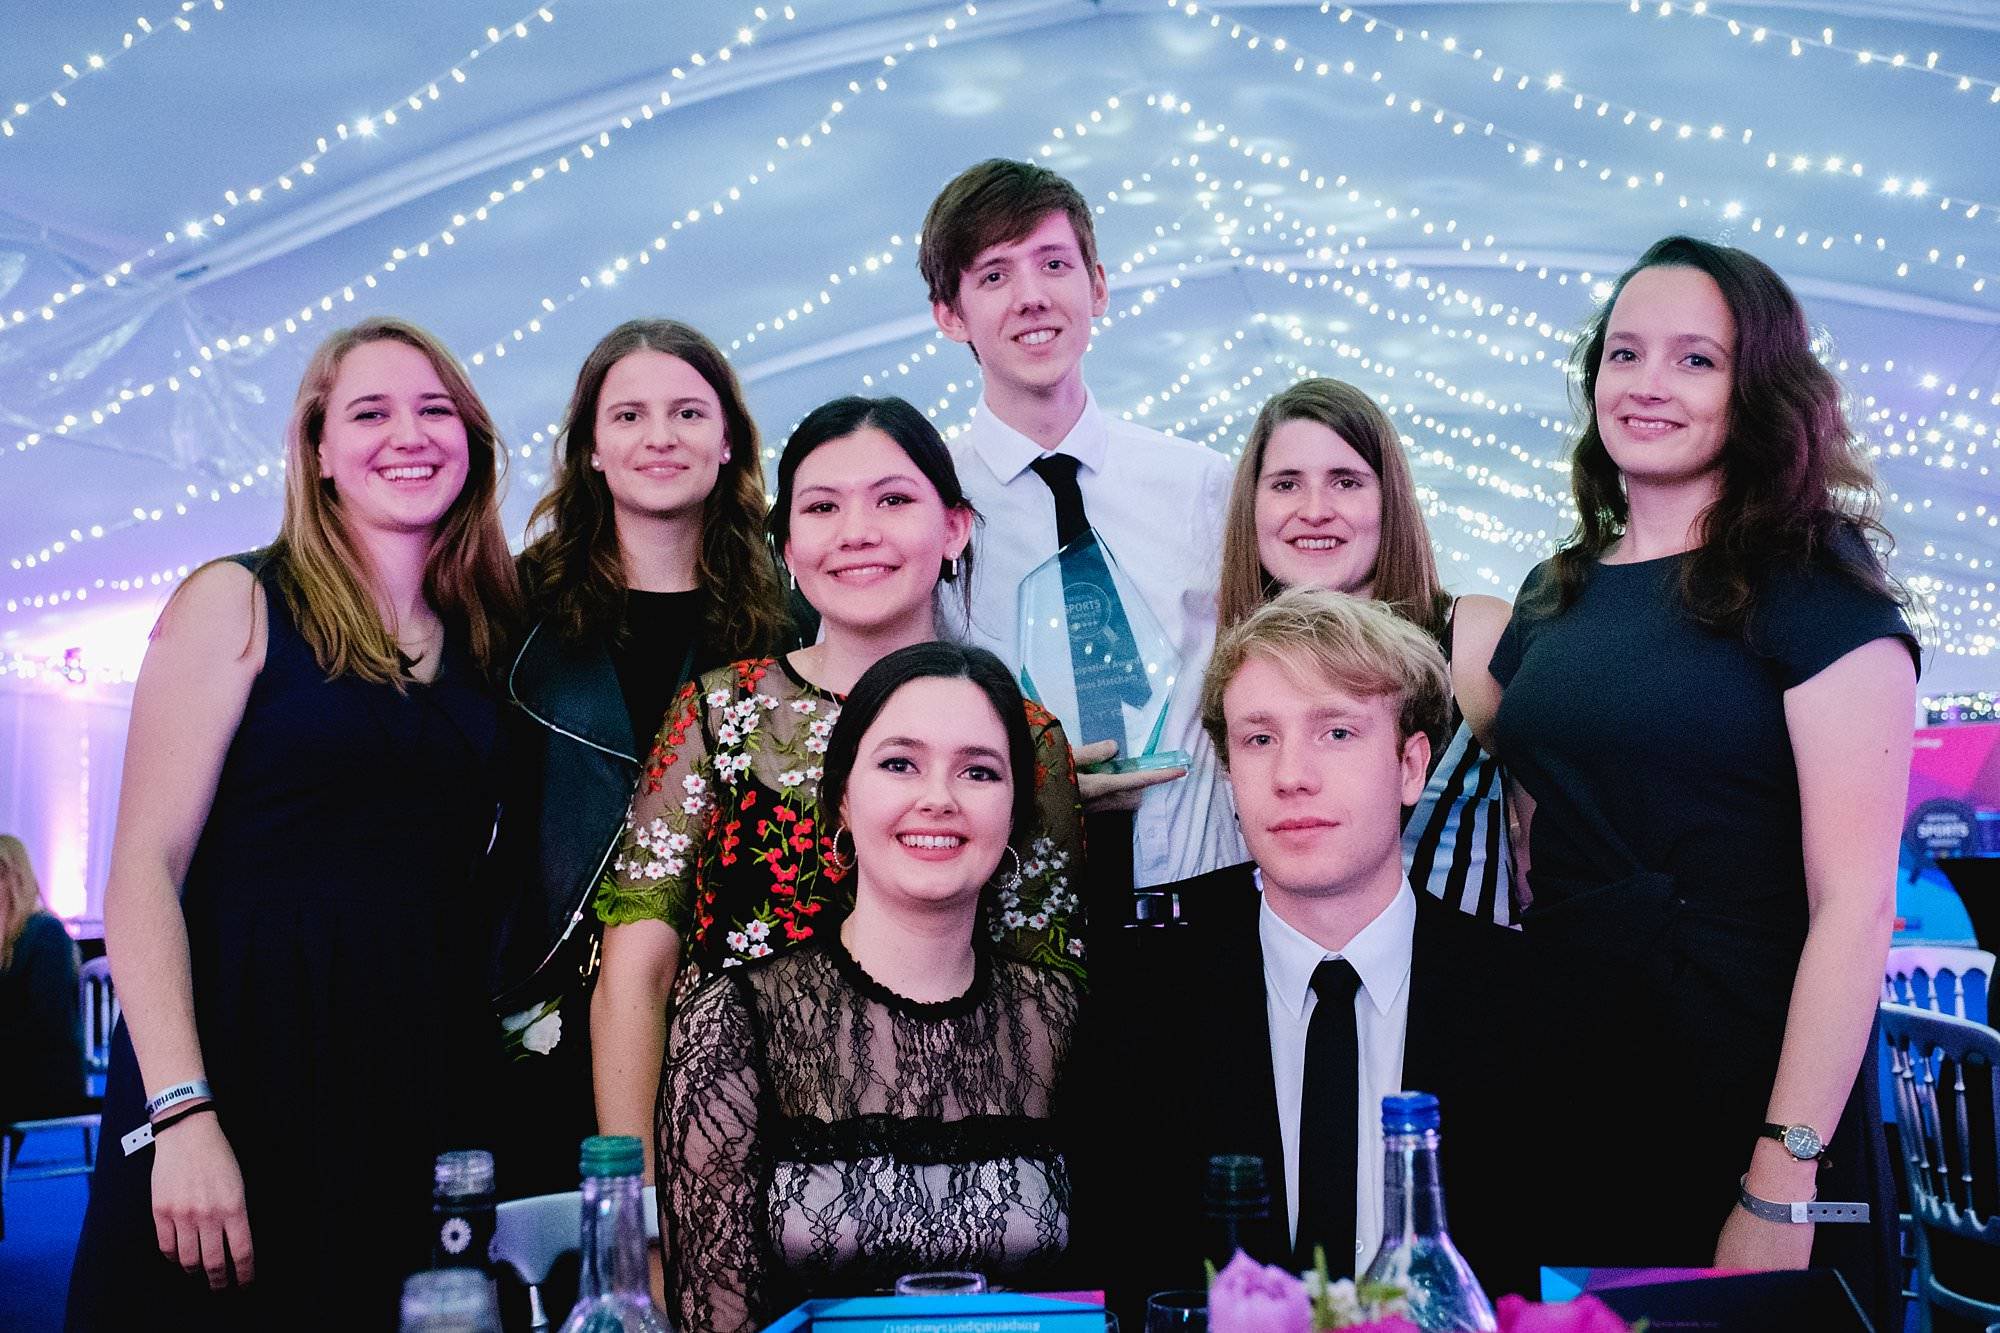 event photographer london icl 2017 021 - Imperial College London Sports Awards 2017